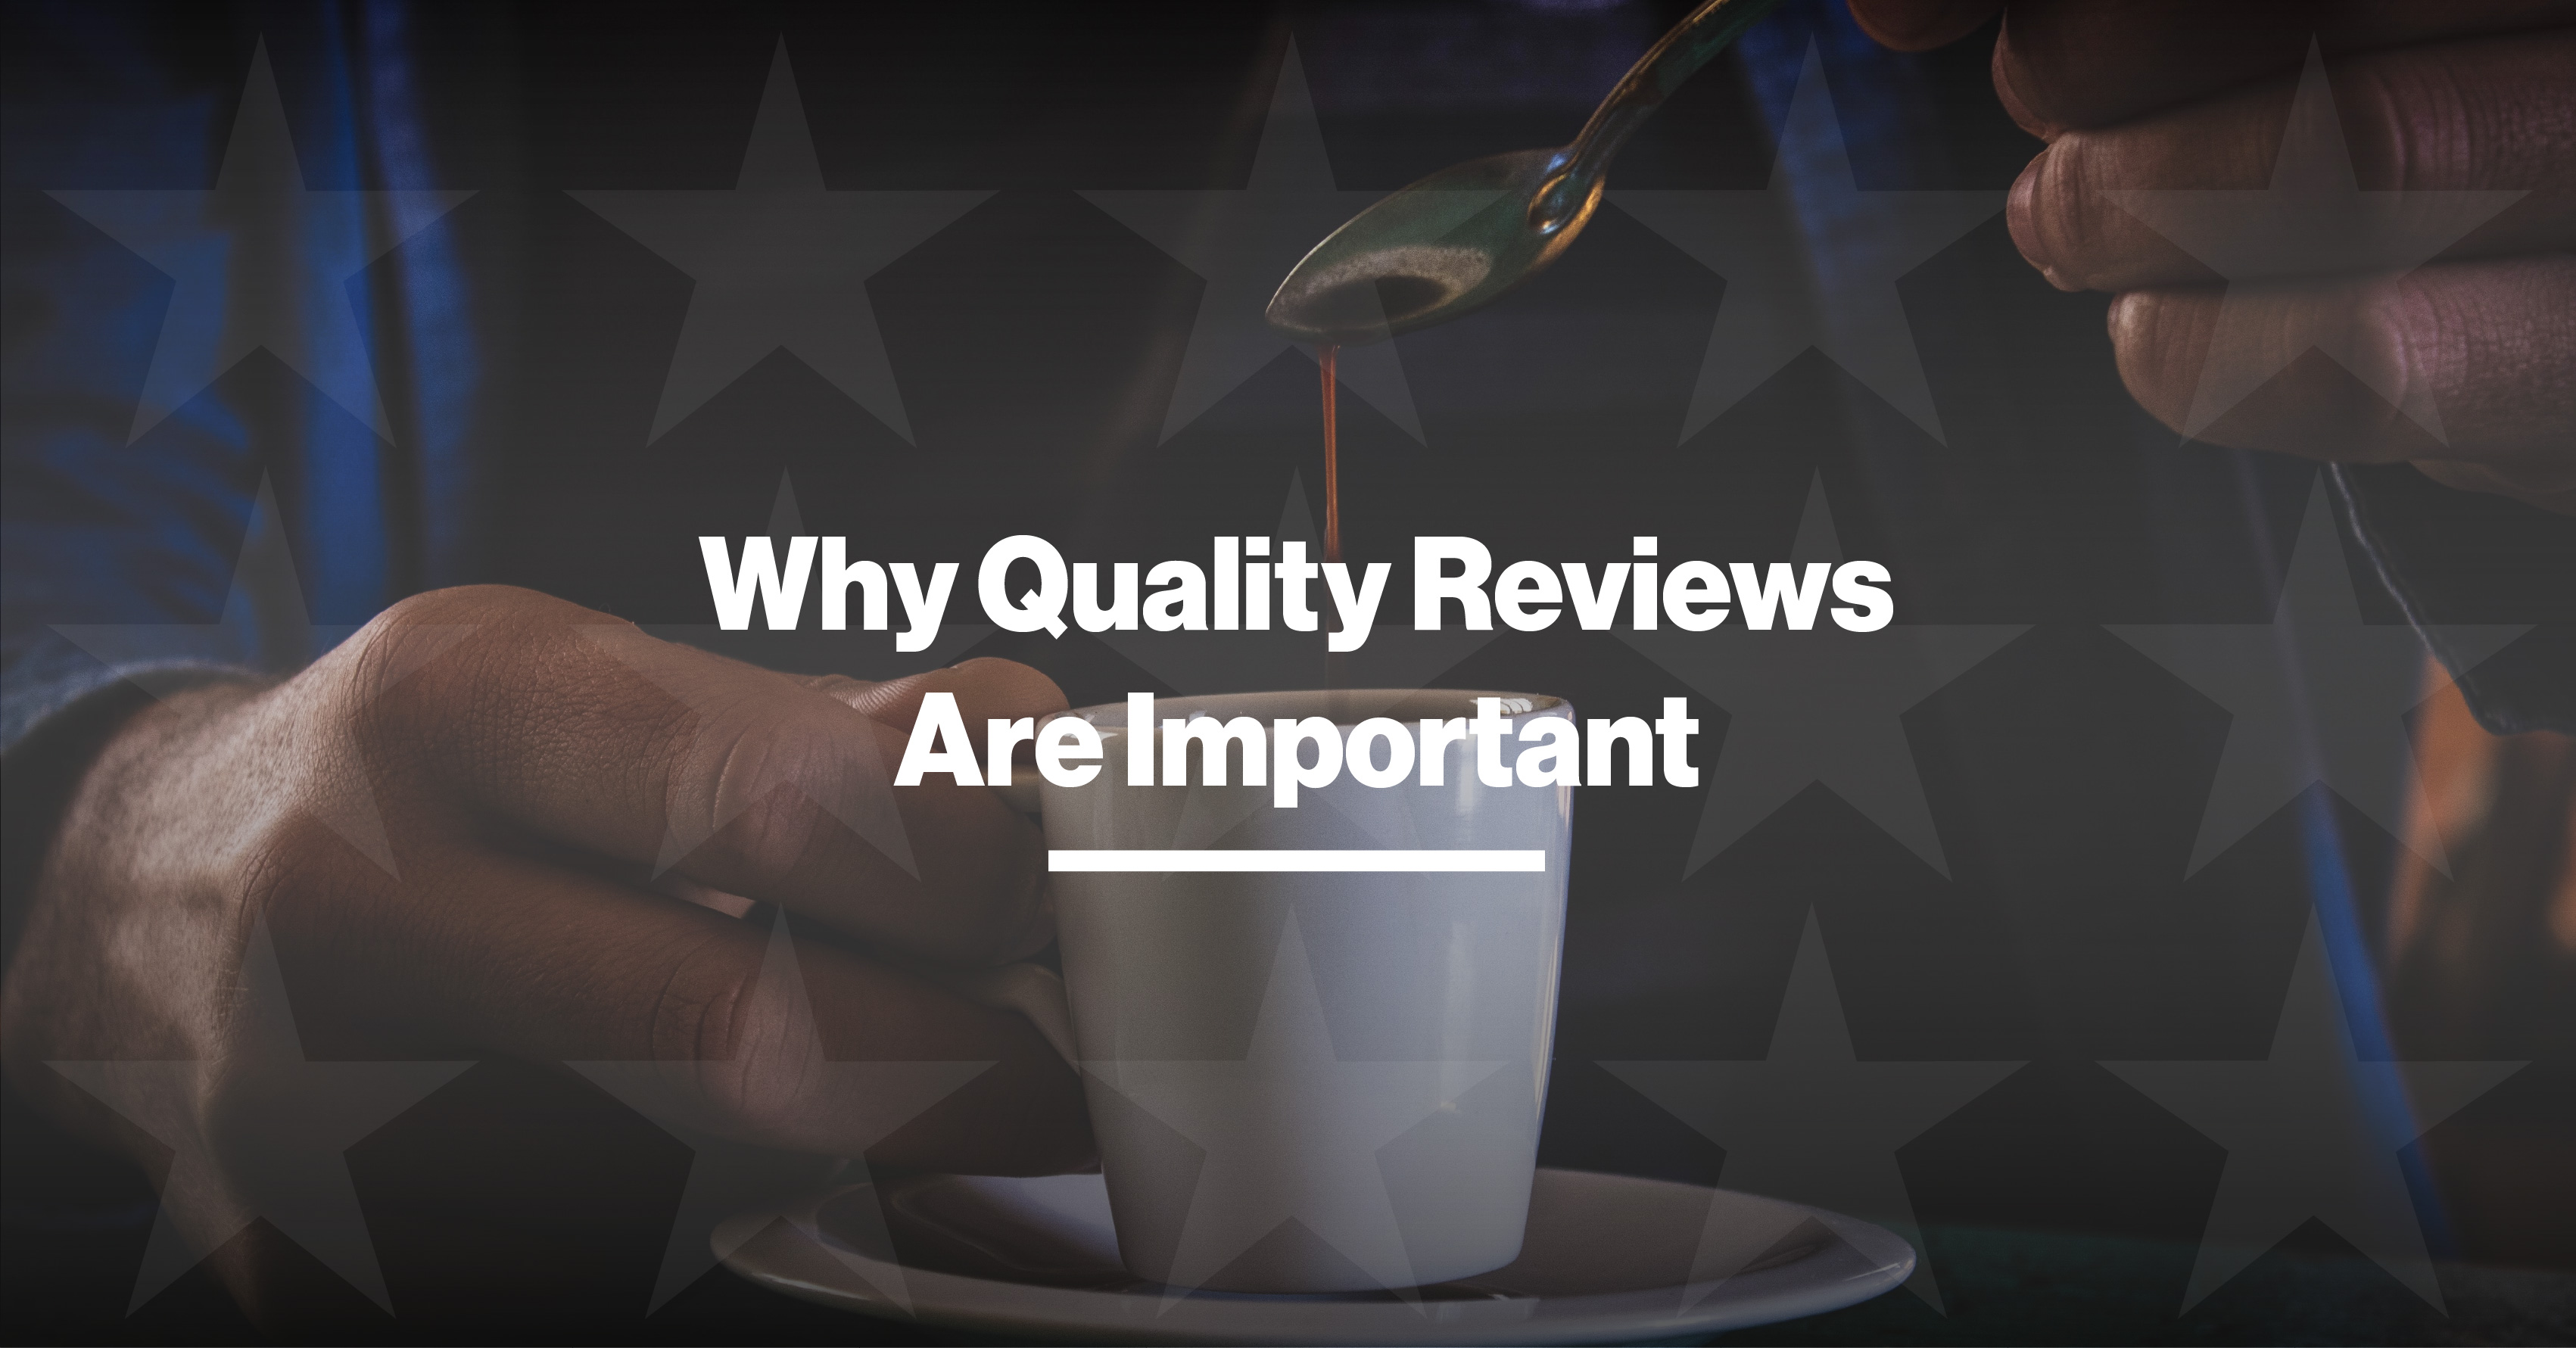 Why Quality Reviews Are Important To Your Customers